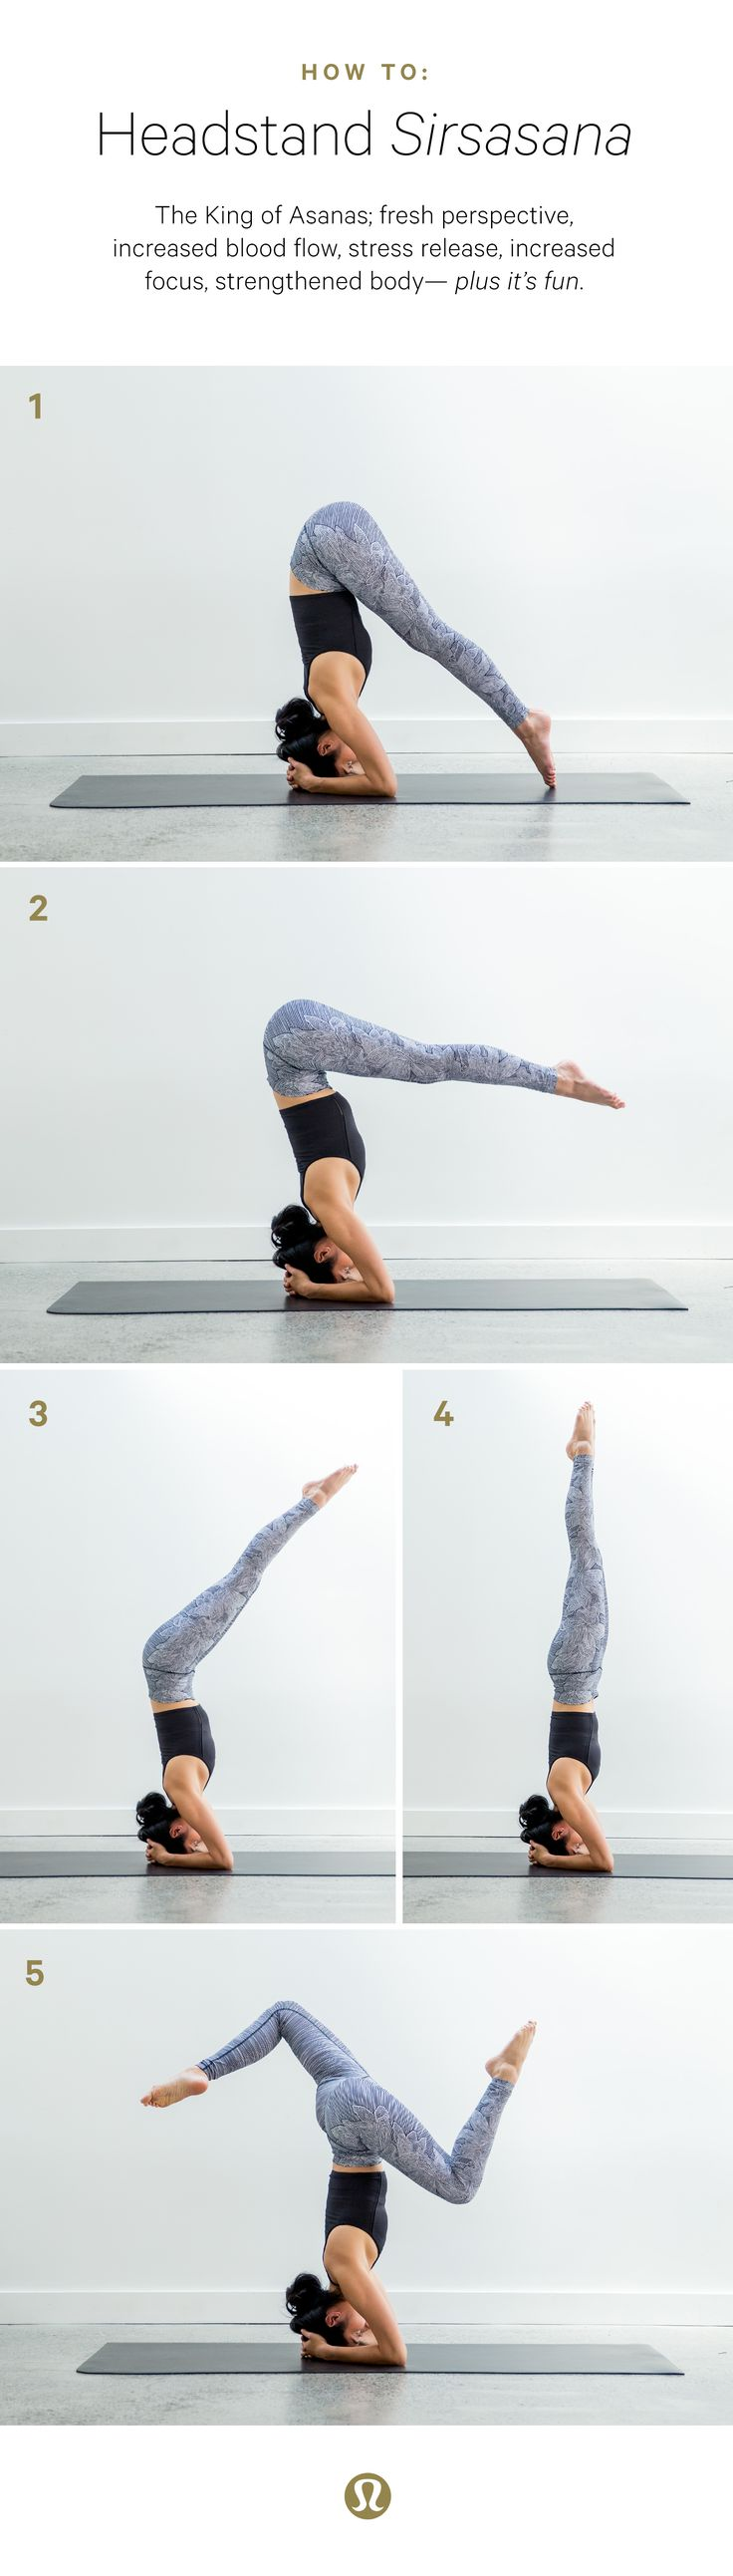 This Pin was discovered by The Journey  Junkie I Yoga + Life Inspiration Tips. Discover (and save!) your own Pins on Pinterest.